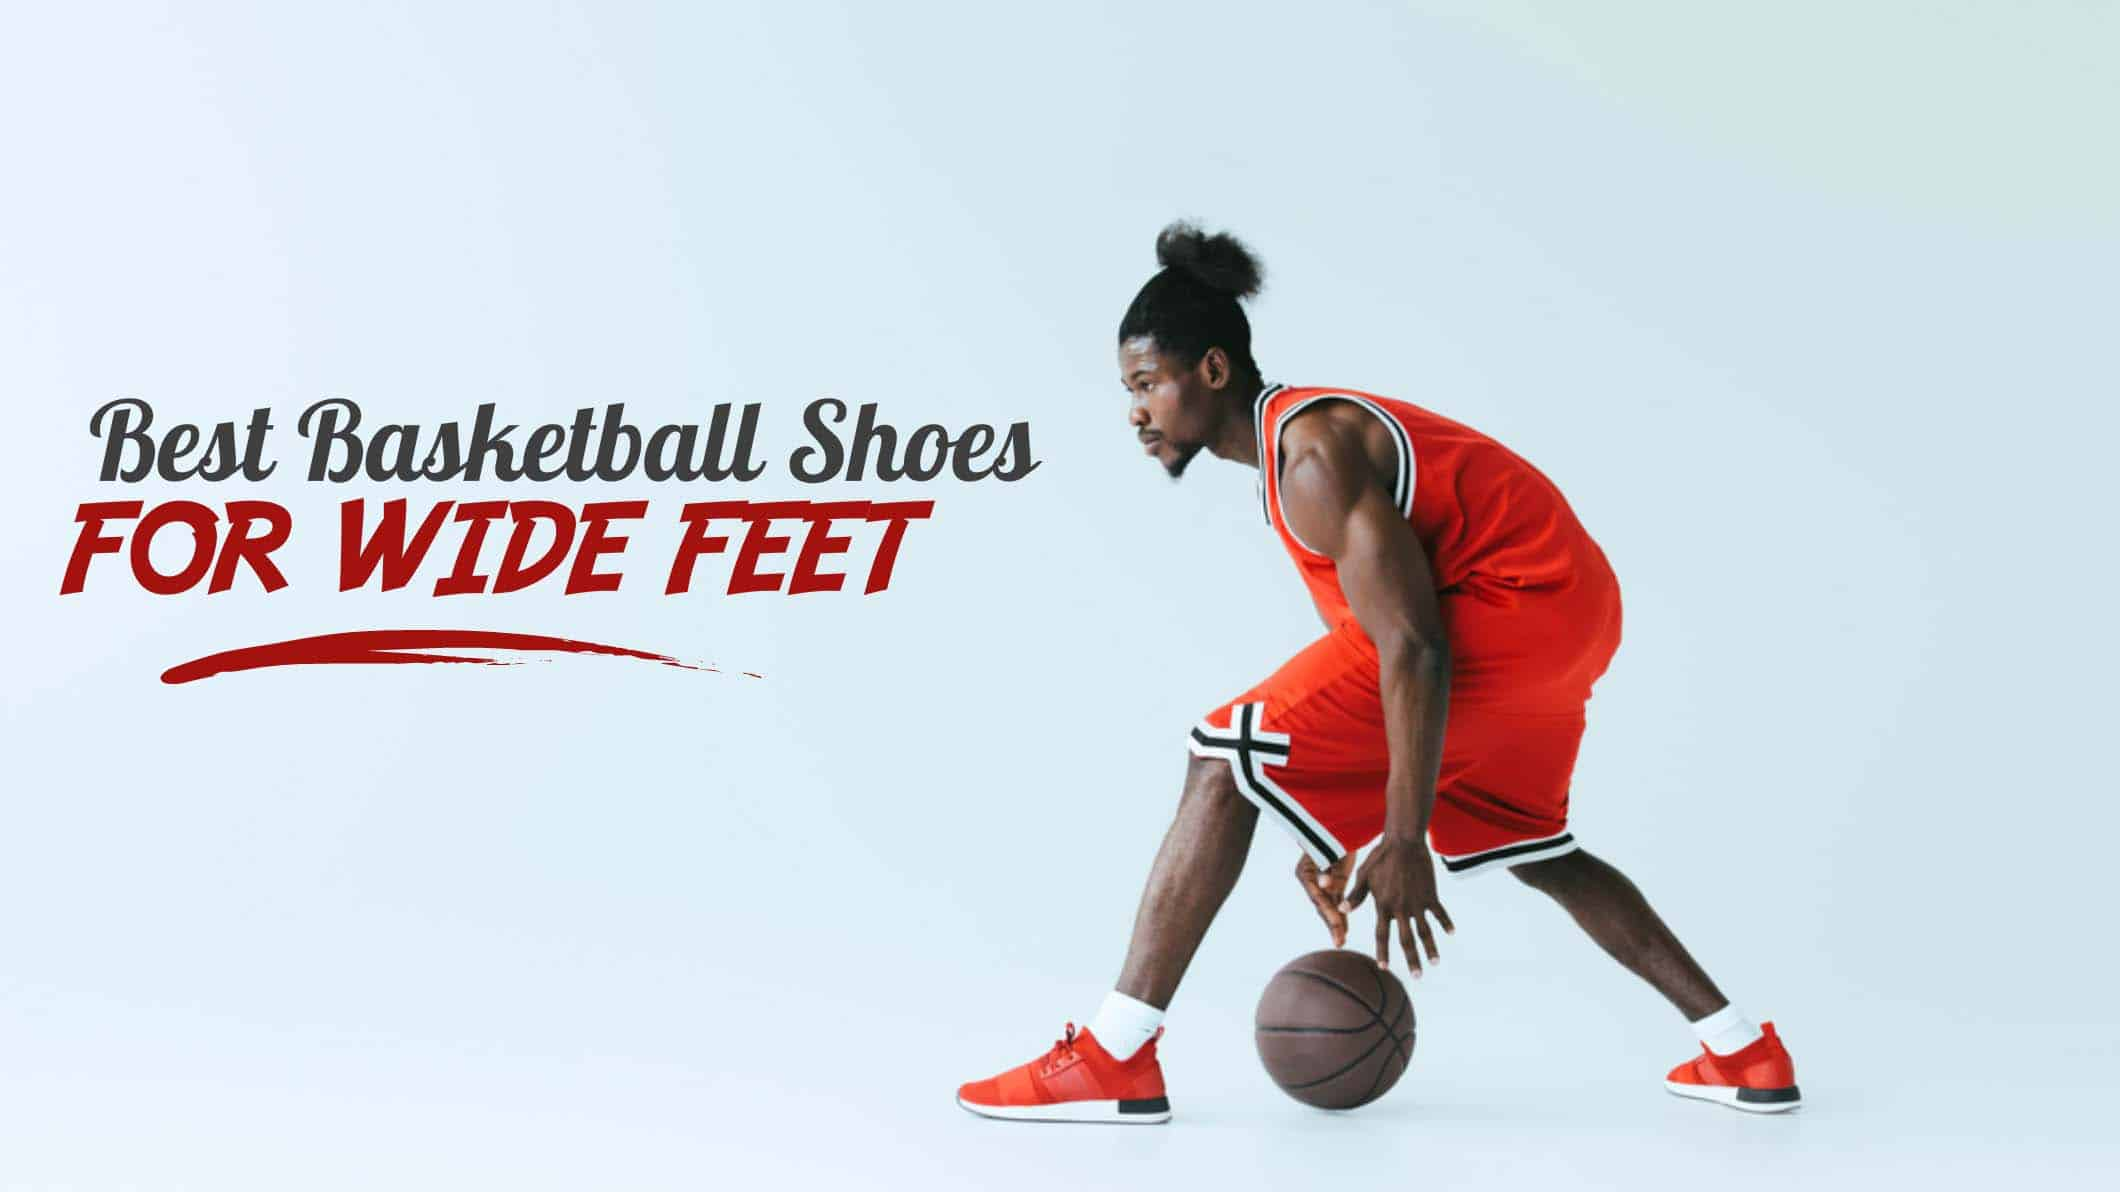 10 Best Basketball Shoes For Wide Feet